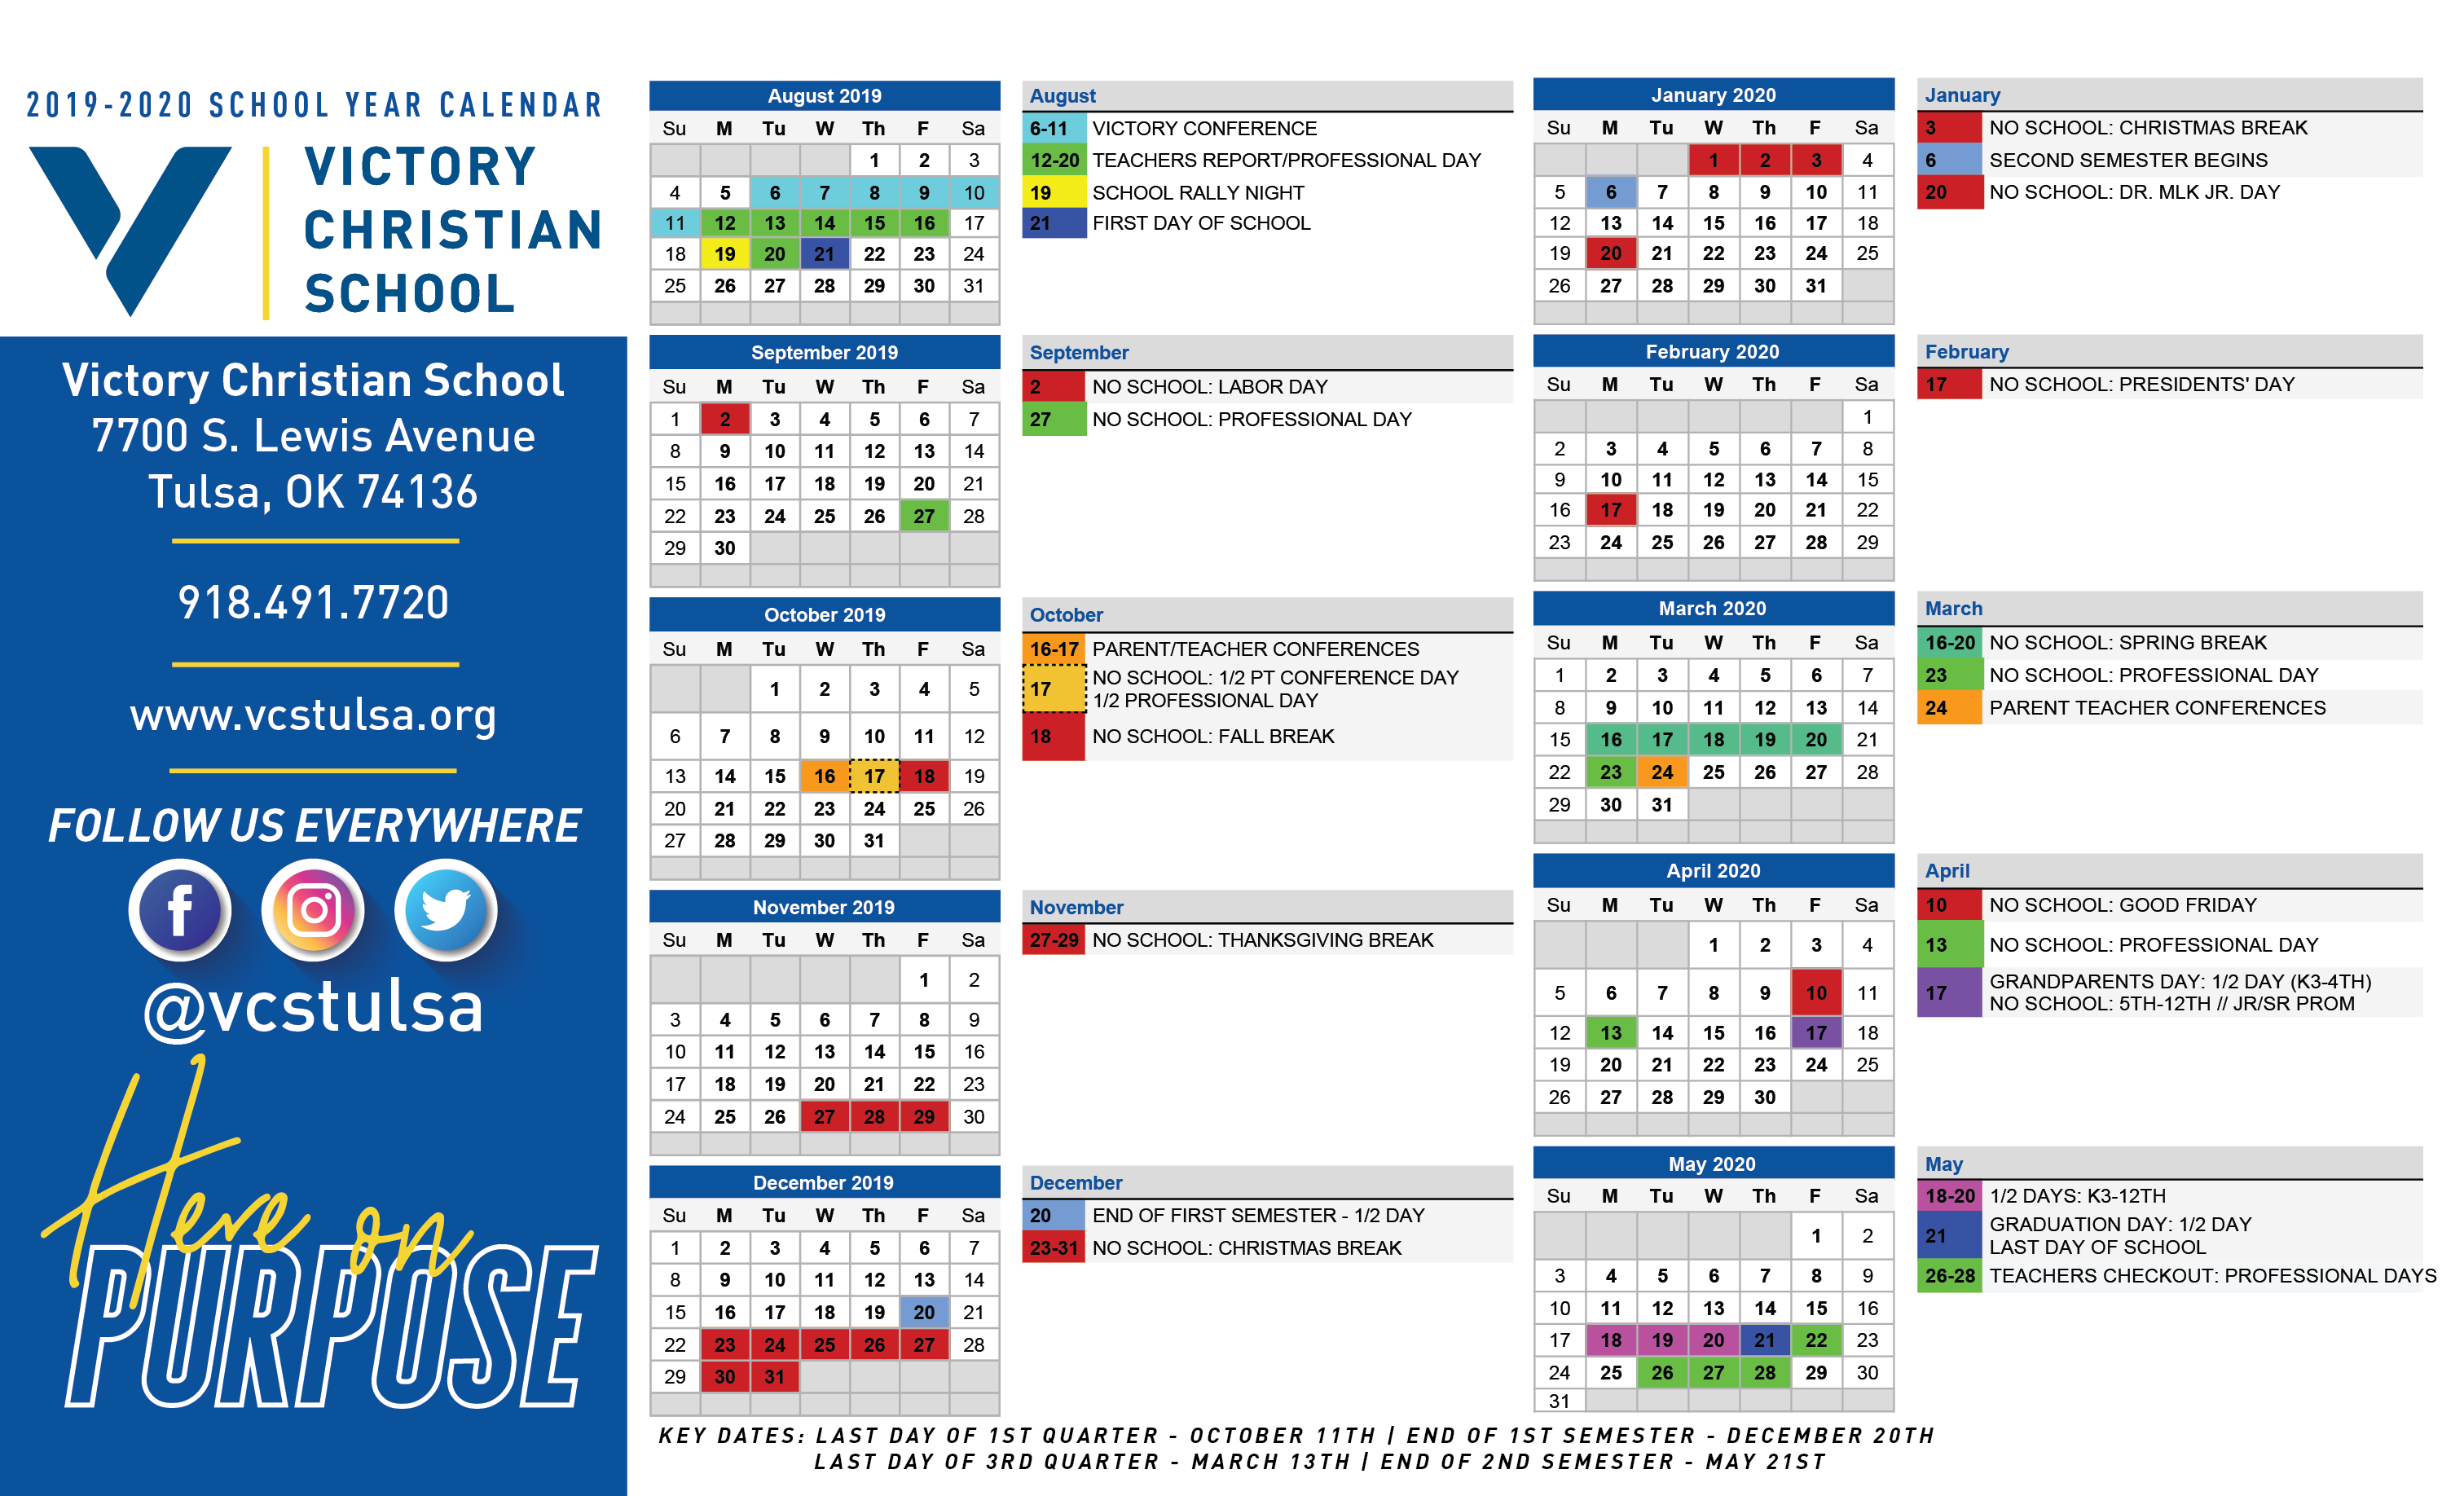 General Calendar 2019 2020 | Victory Christian School Within University Of Tulsa 2021 Calendar